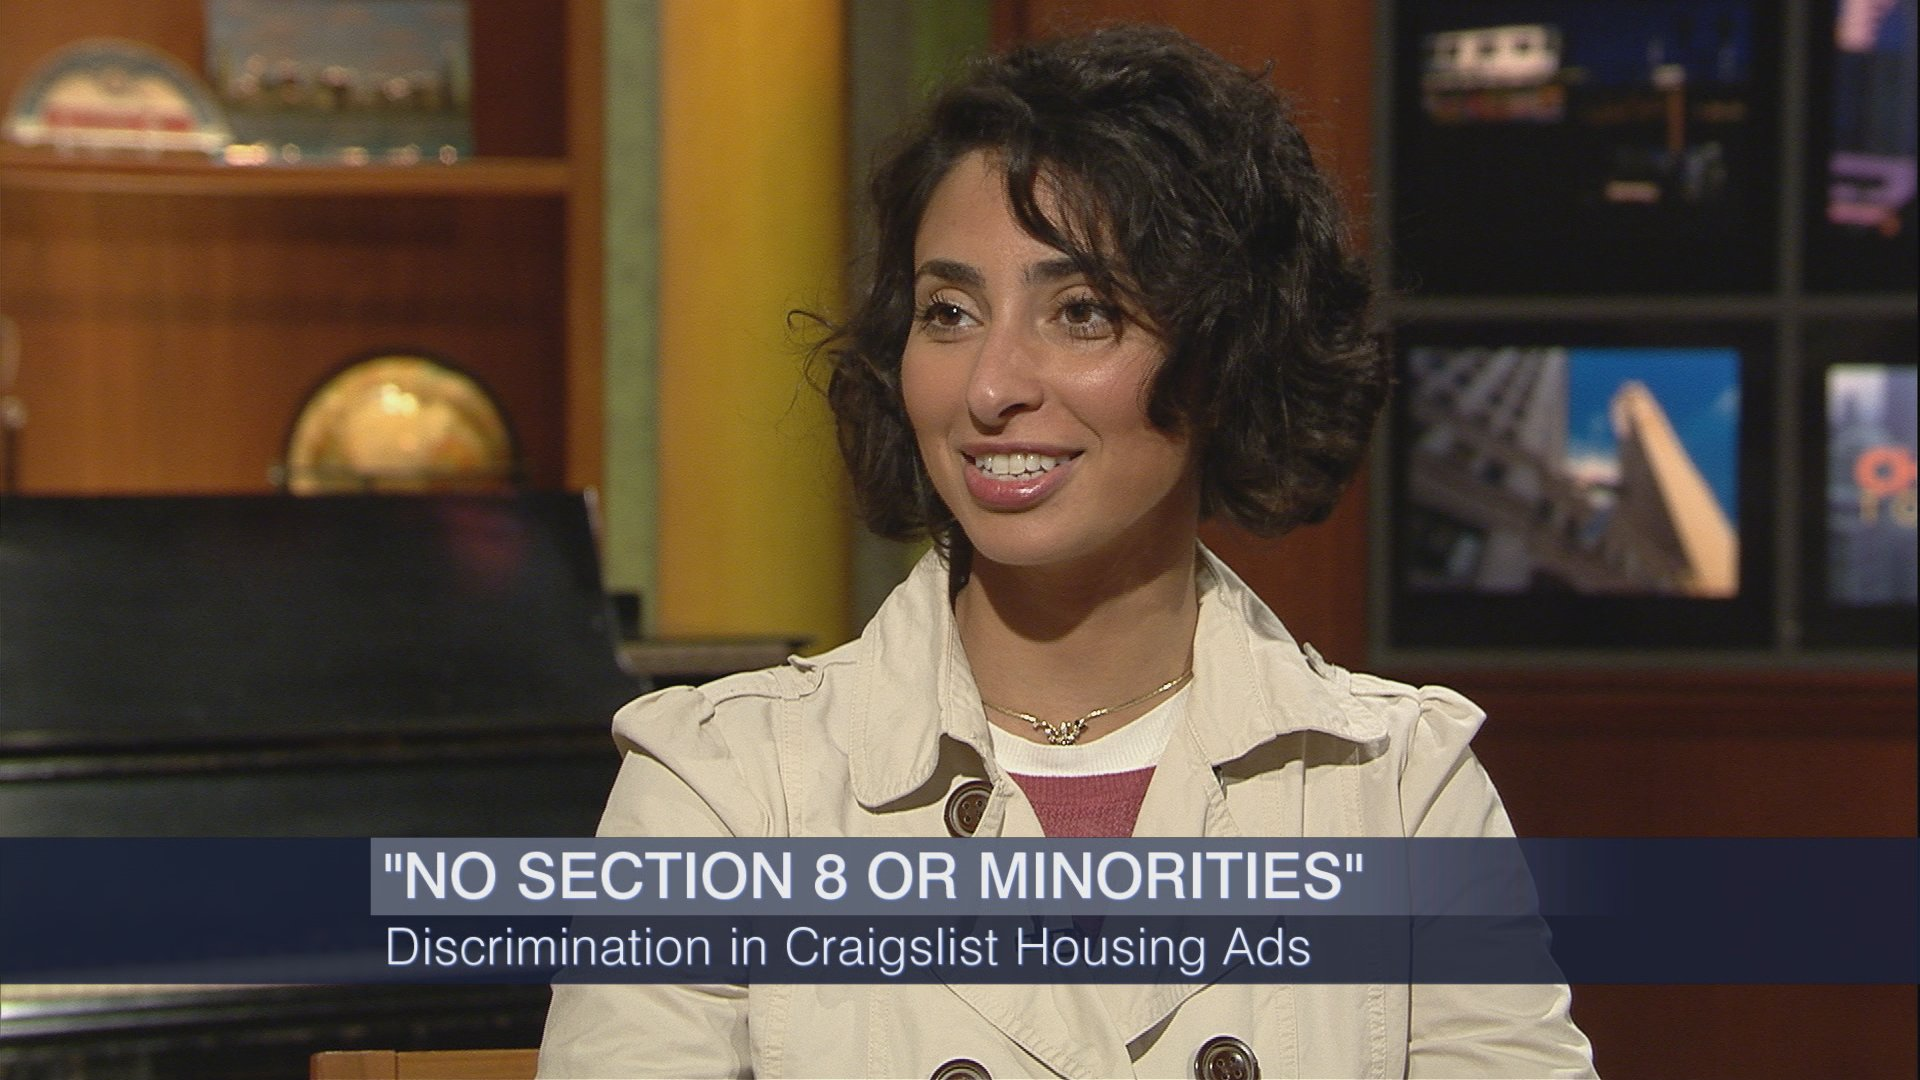 Craigslist Ads Citing 'No Section 8' Found Among Chicago